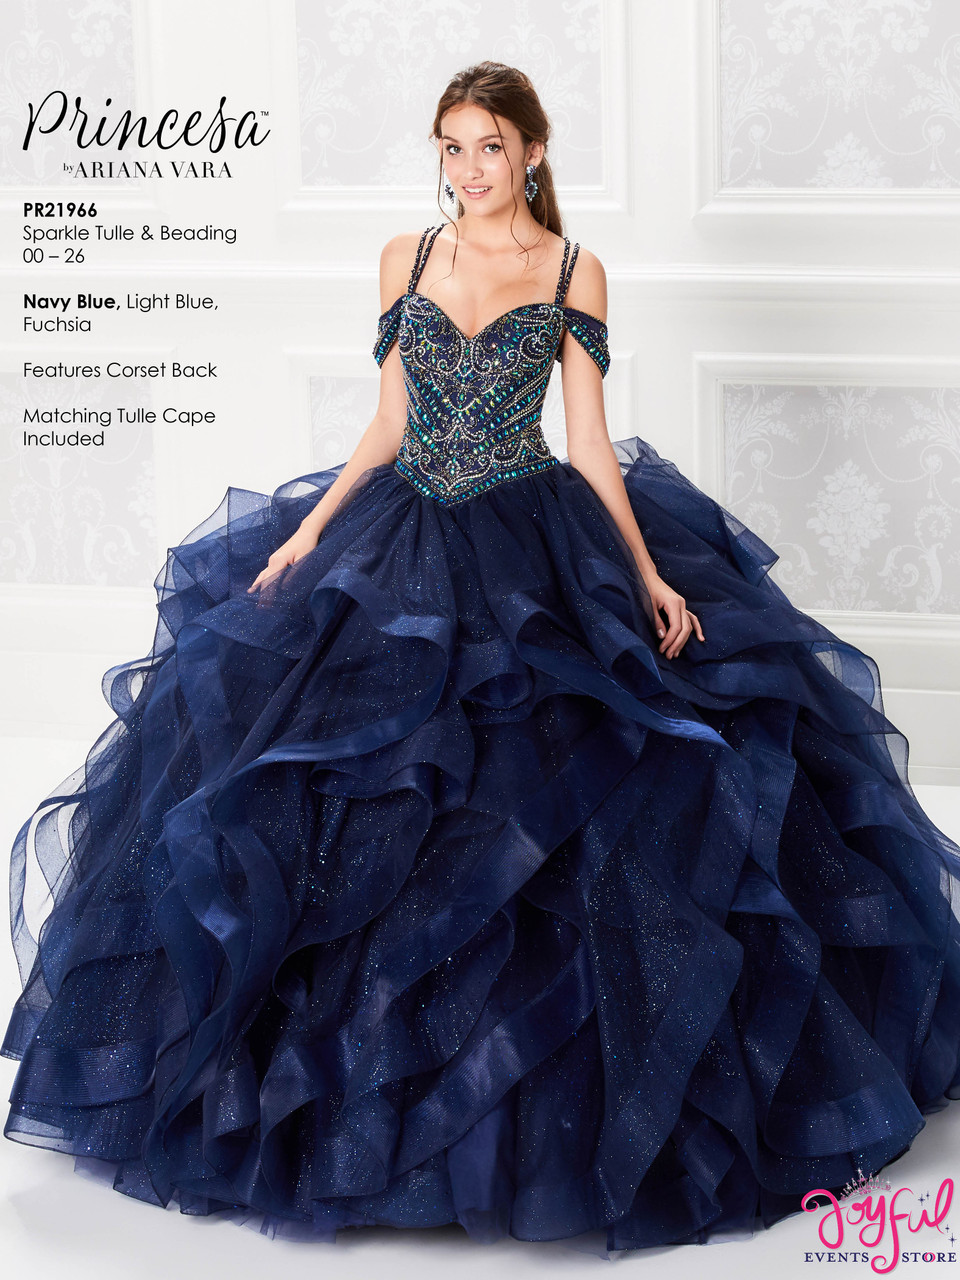 Navy Blue Quinceanera Dress PR21966NV